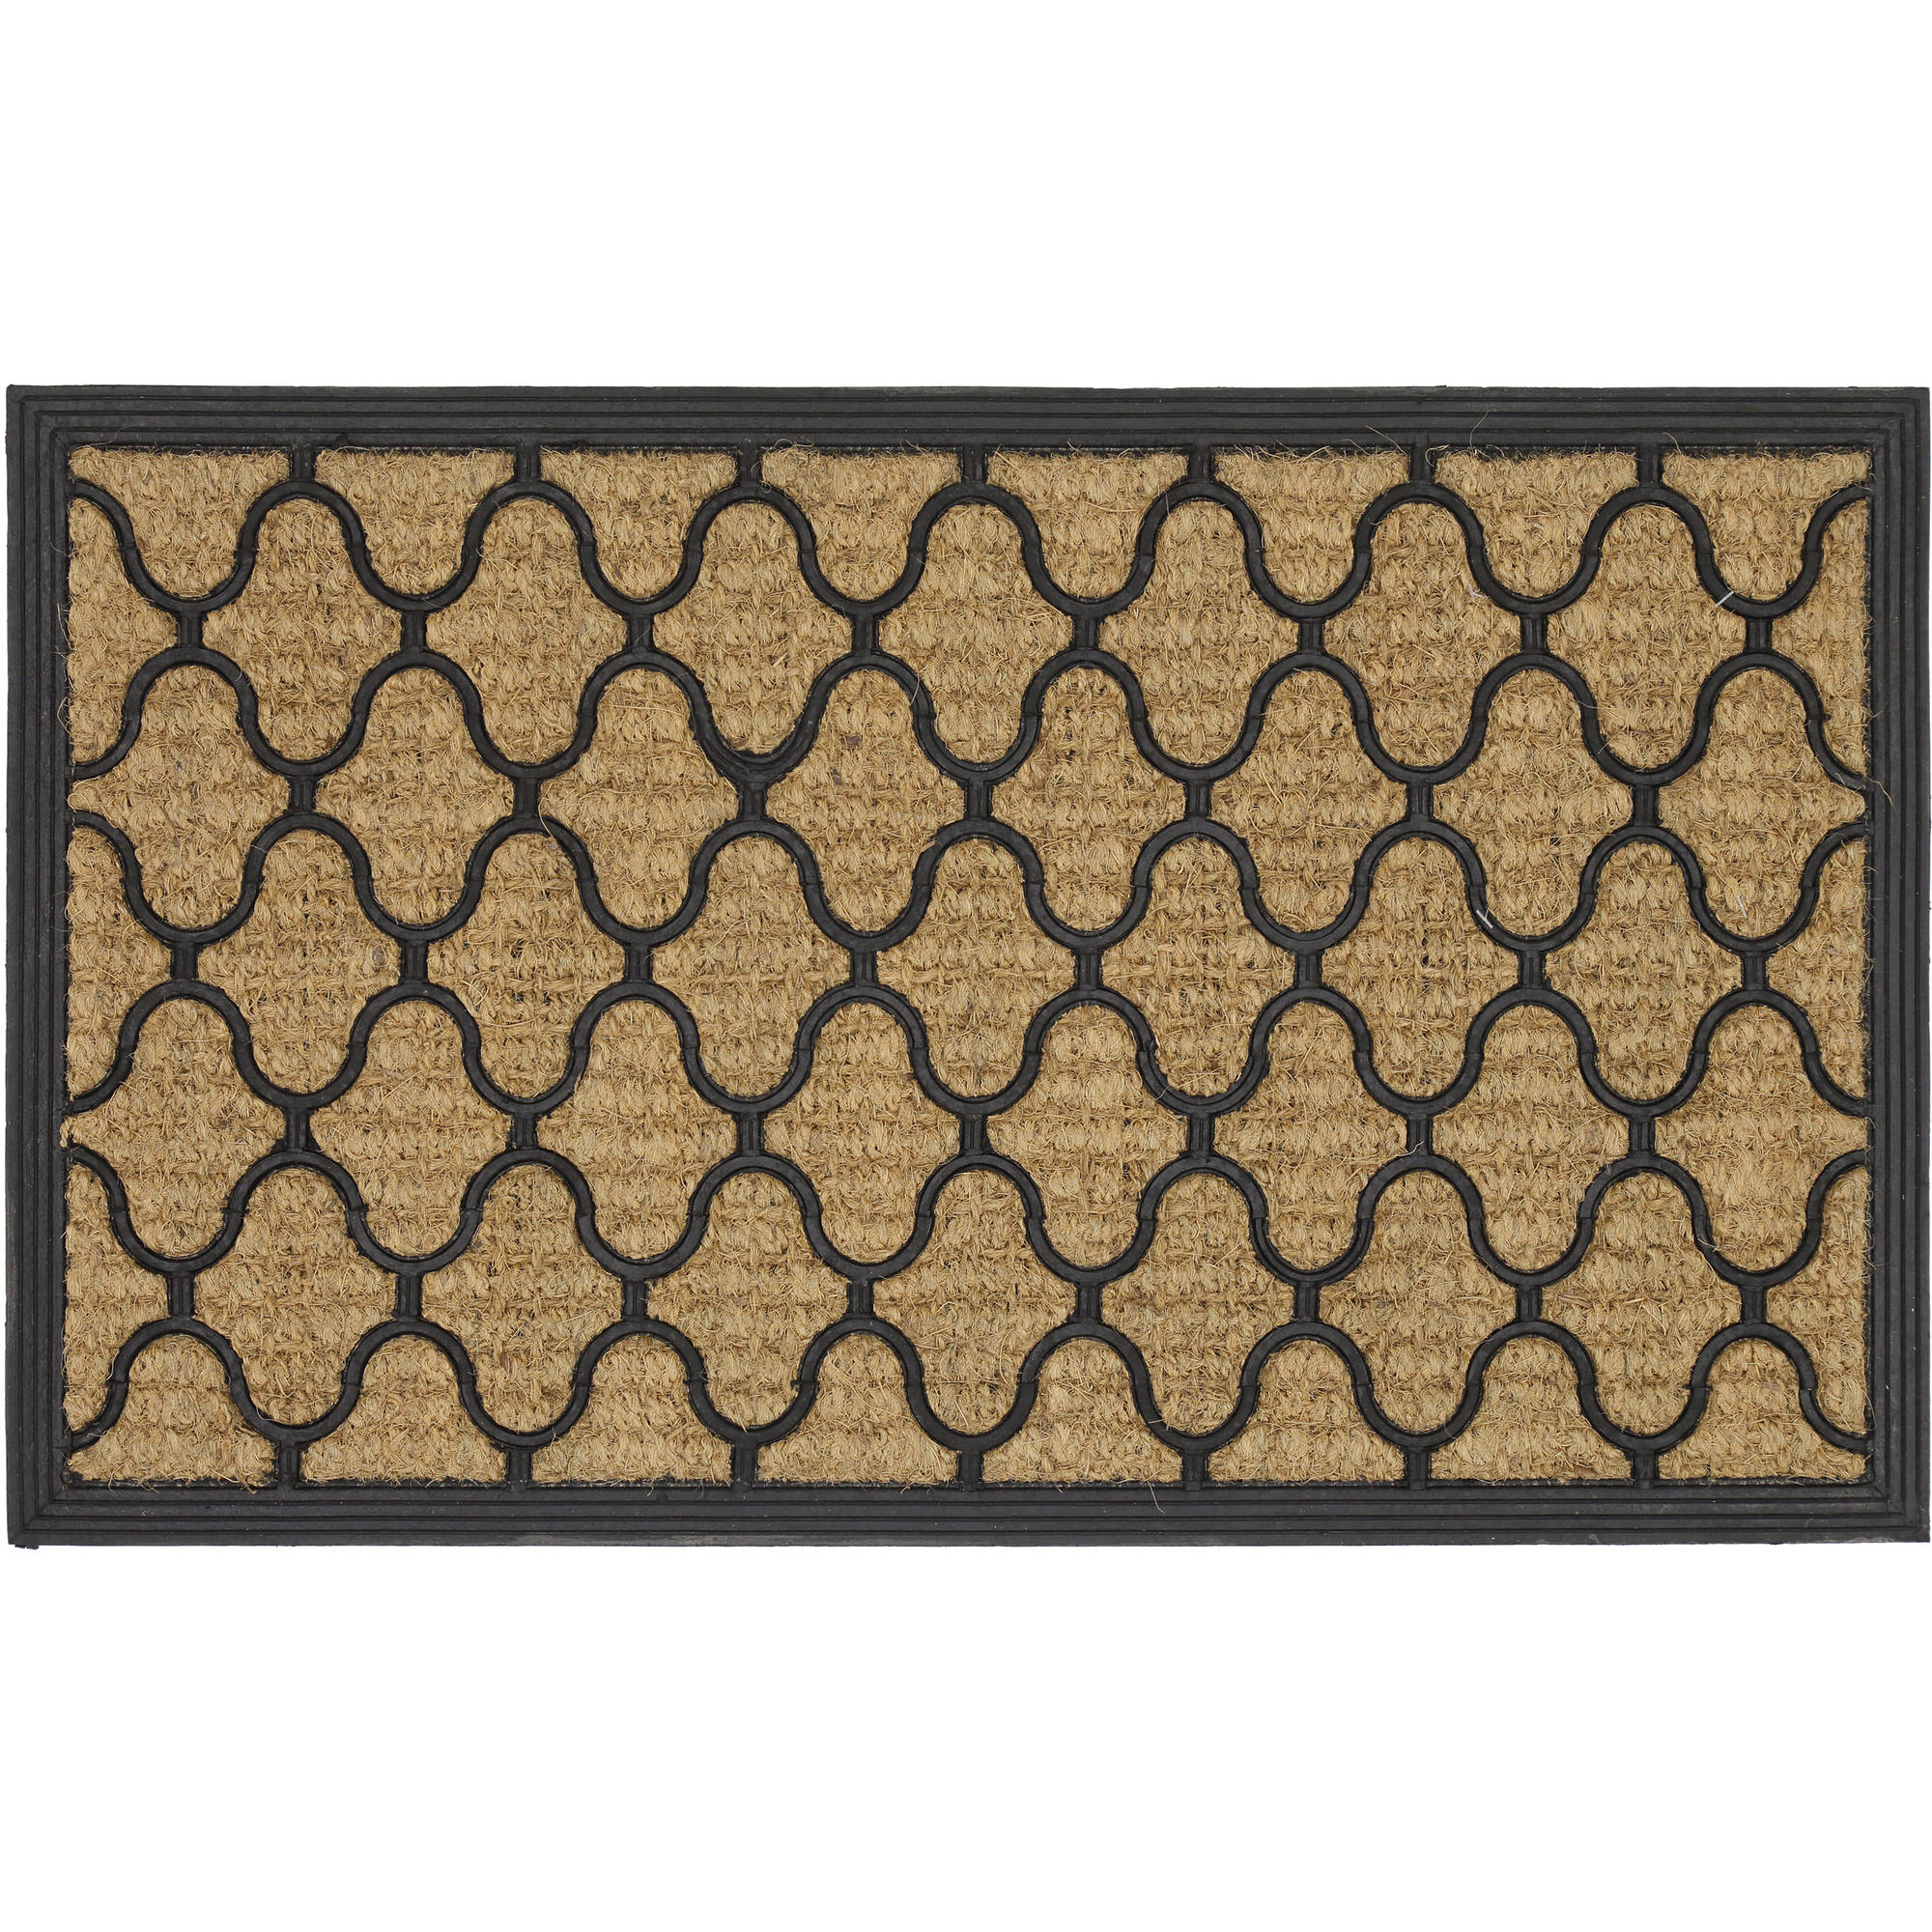 mainstays fret rubber coir doormat - Rubber Door Mat